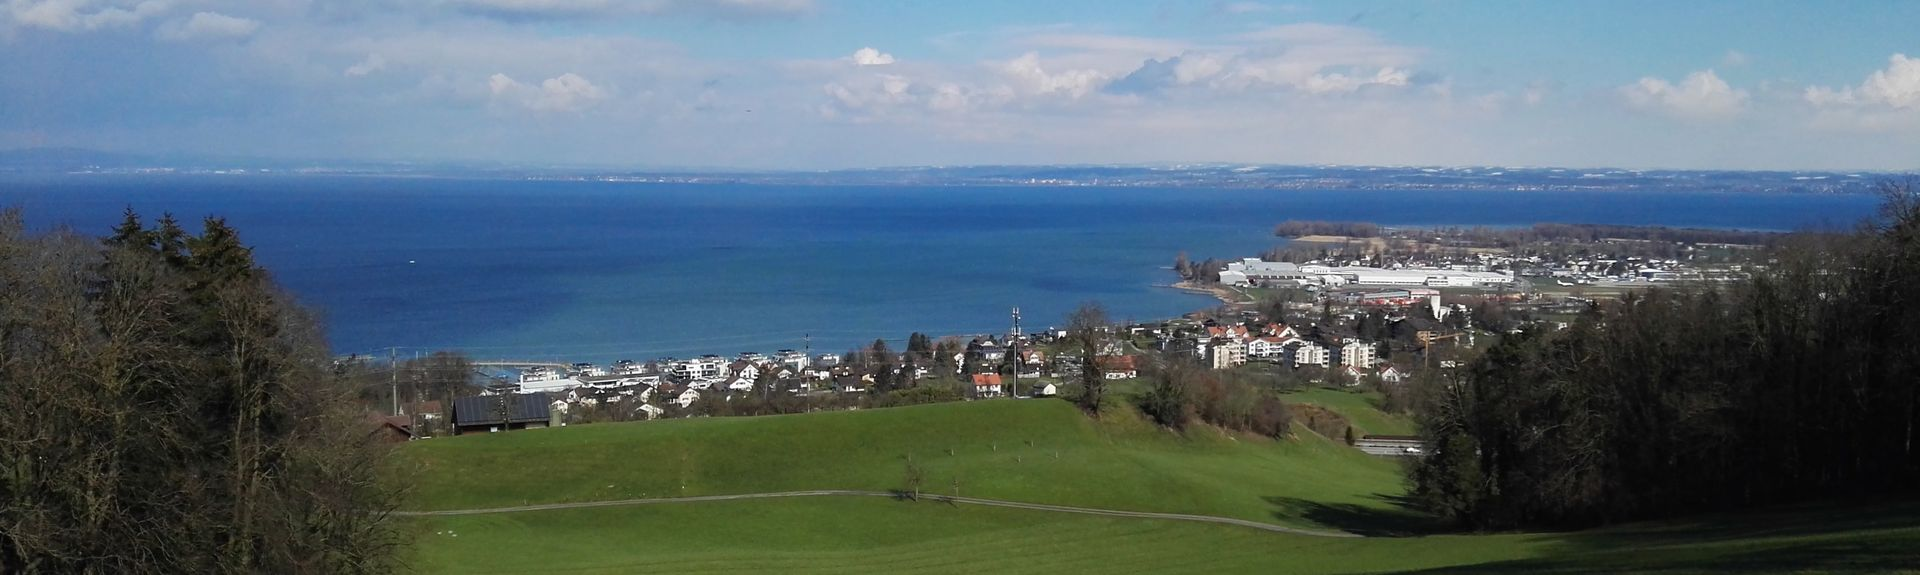 Goldach, Canton of St. Gallen, Switzerland